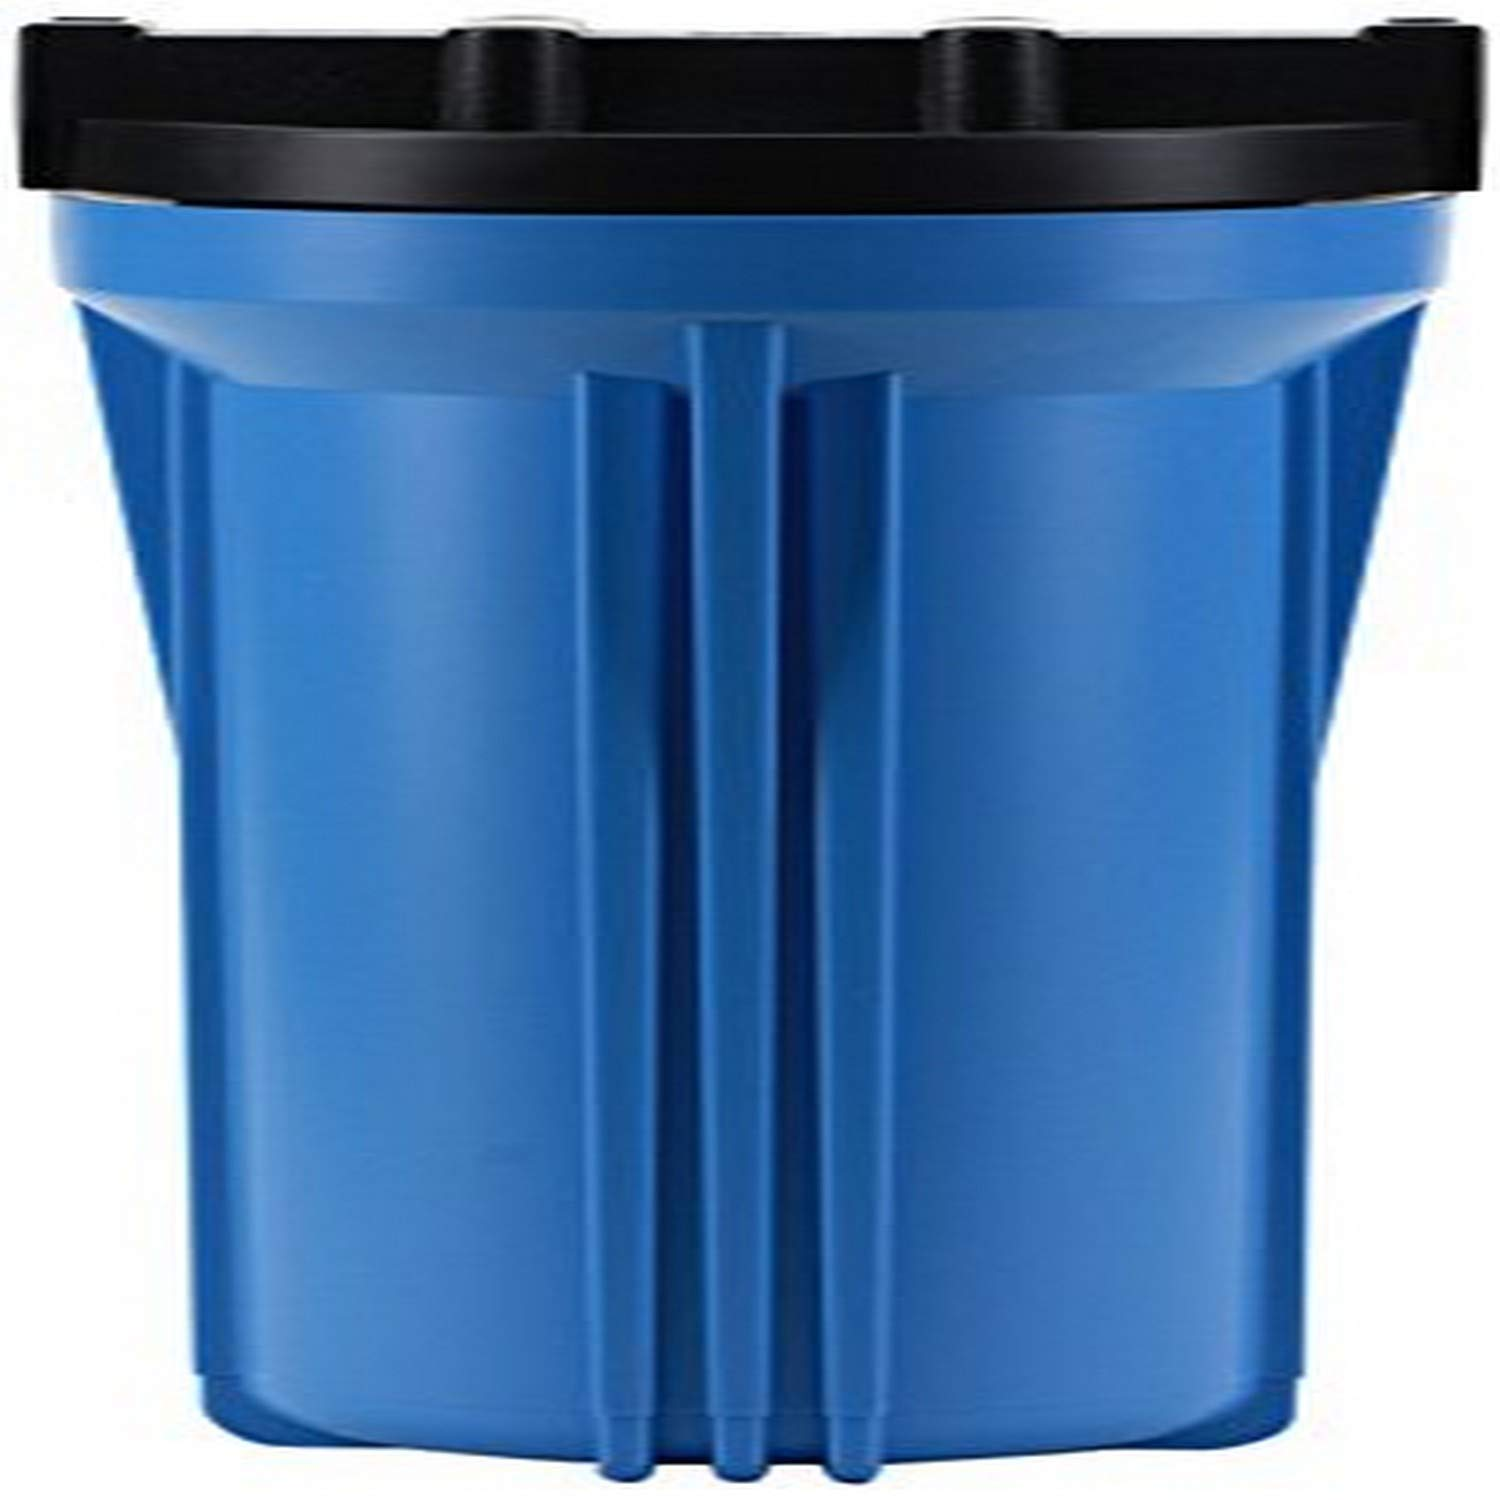 Hydronix HX-HF3-10BLBK14 10 Blue Housing with Black Rib Cap For RO /& Filtration Systems 1//4 Ports